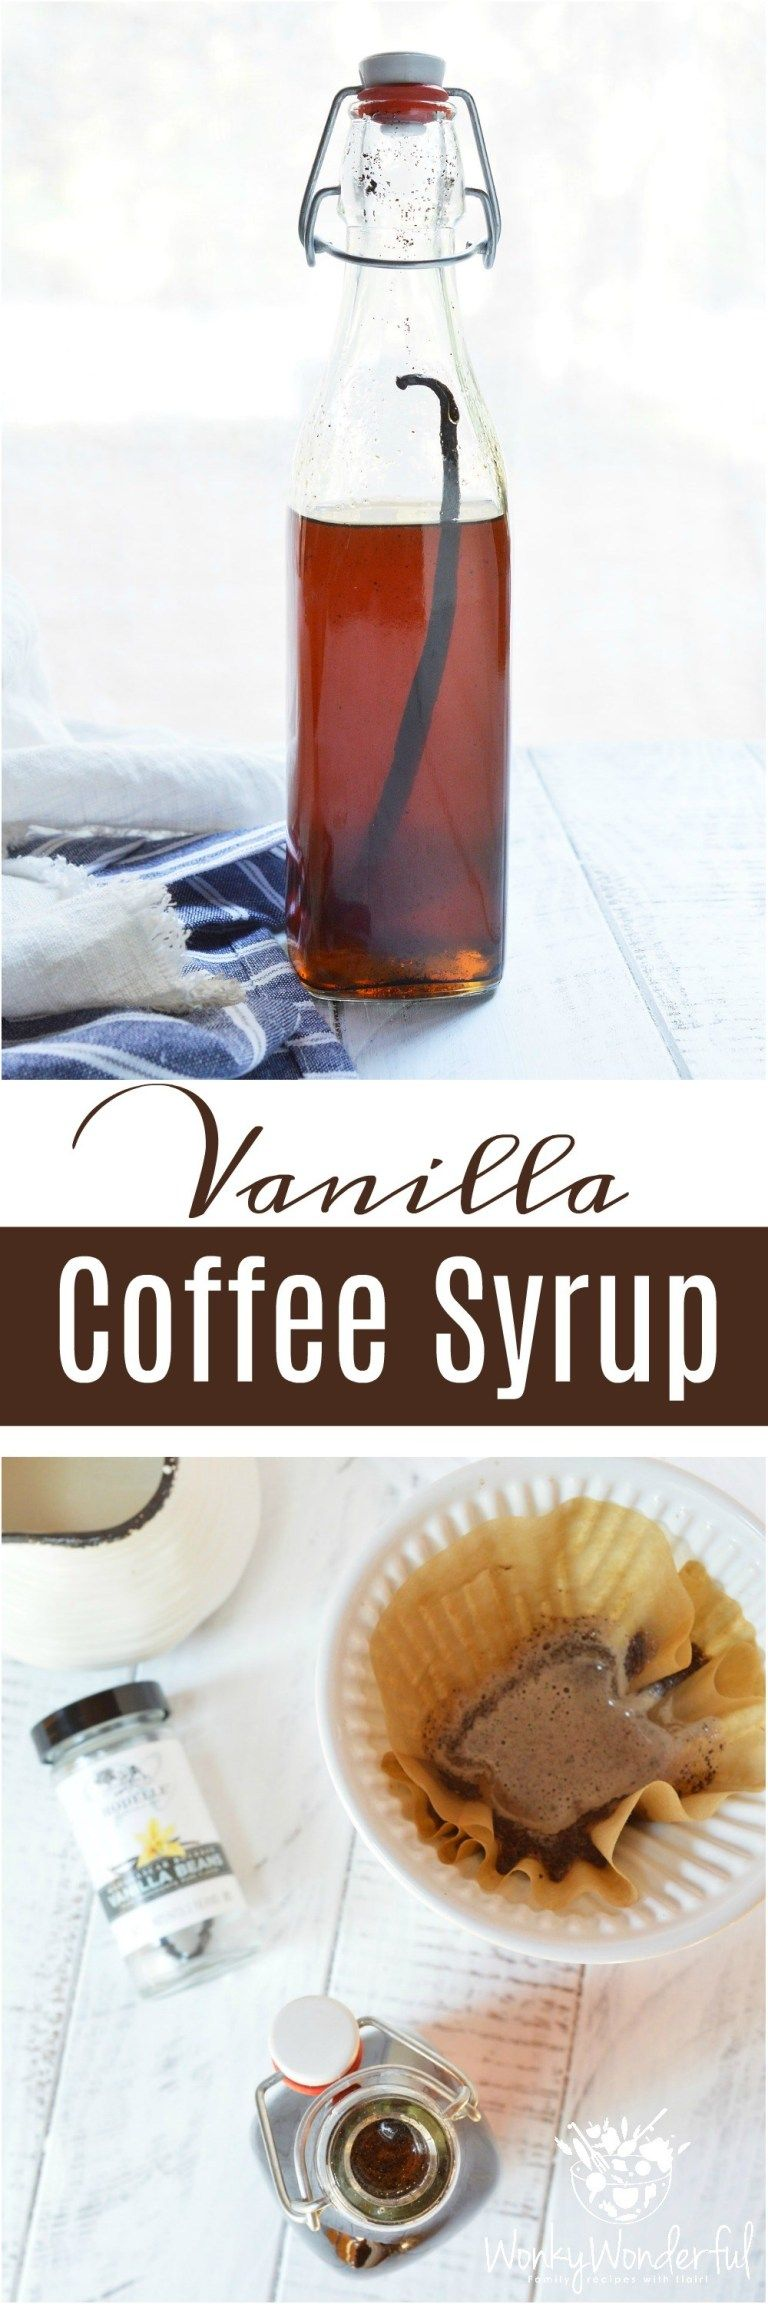 Homemade vanilla coffee syrup is easy to make and will